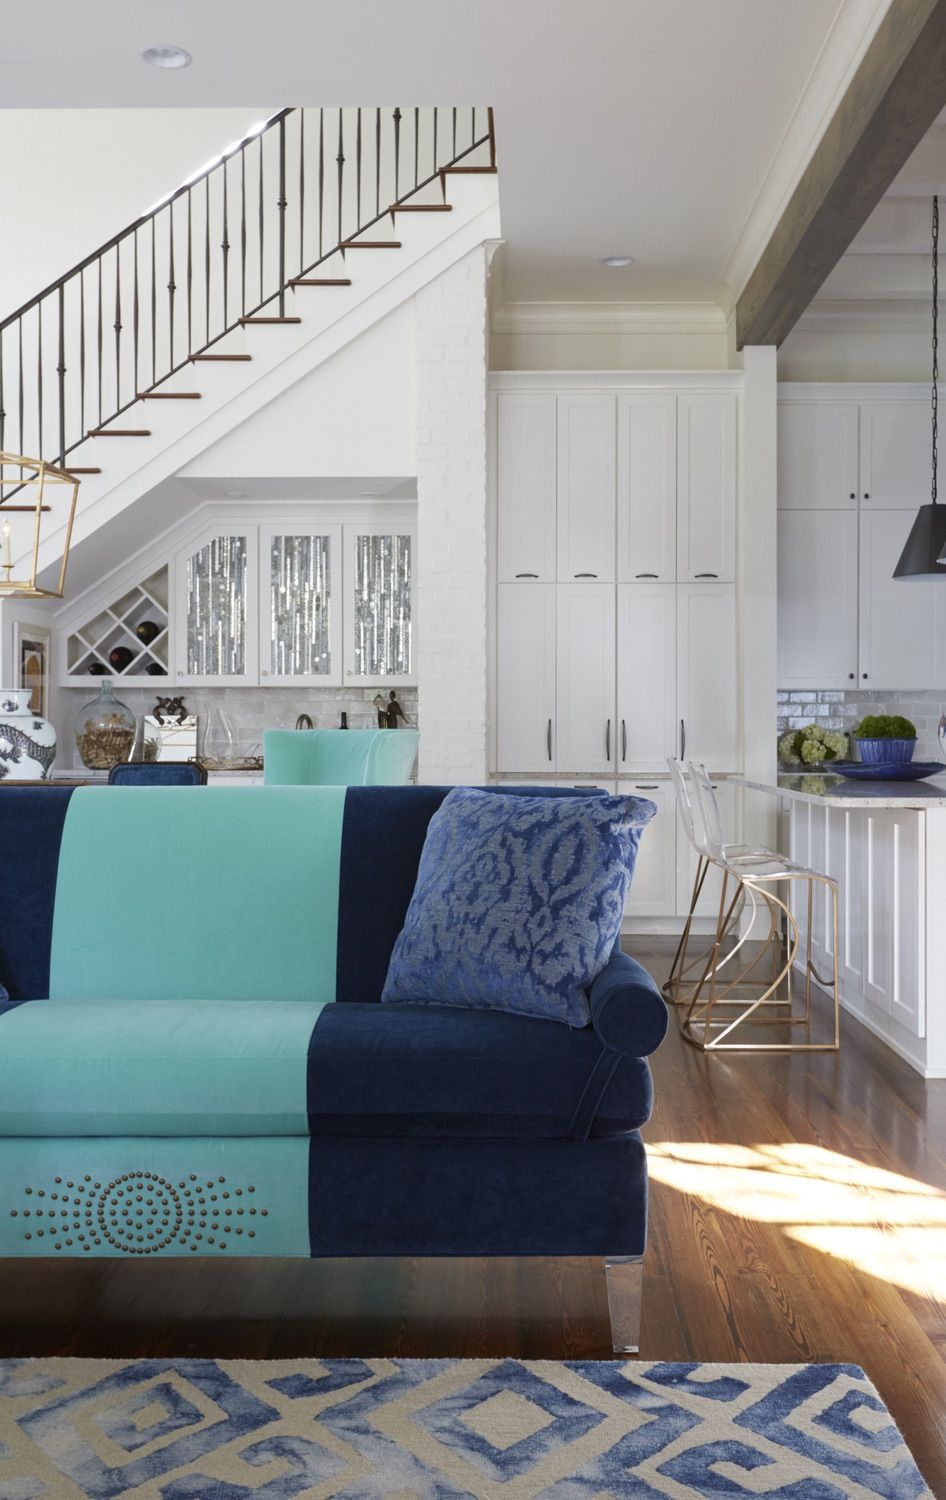 Creative ideas for home interior old world chic  wet bars open concept and settees